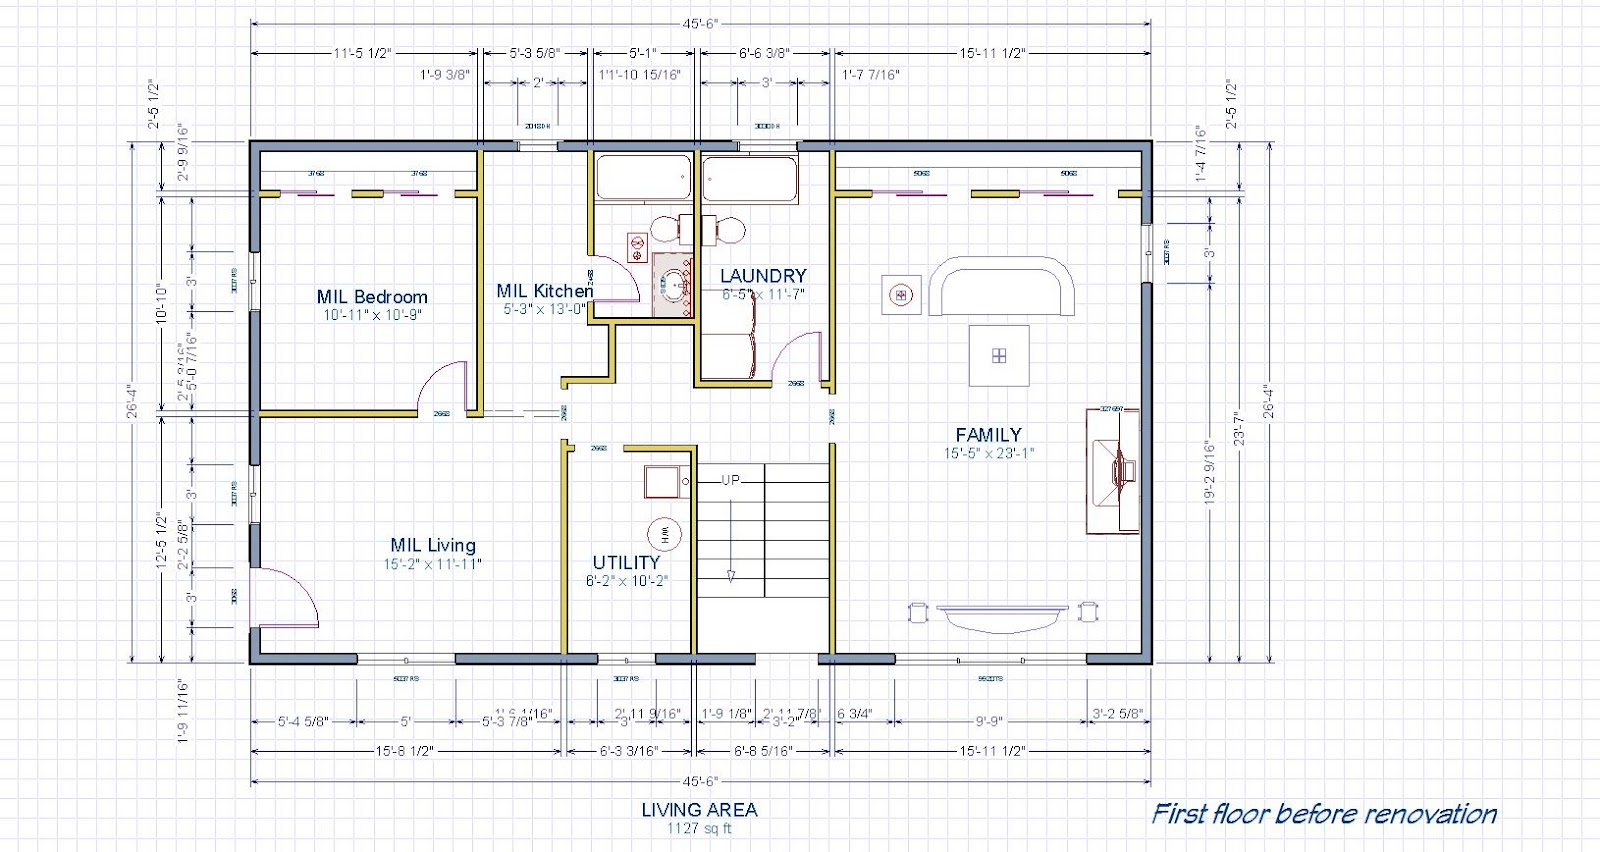 First Floor Layout Before Renovation (click On Image To See Larger Size)